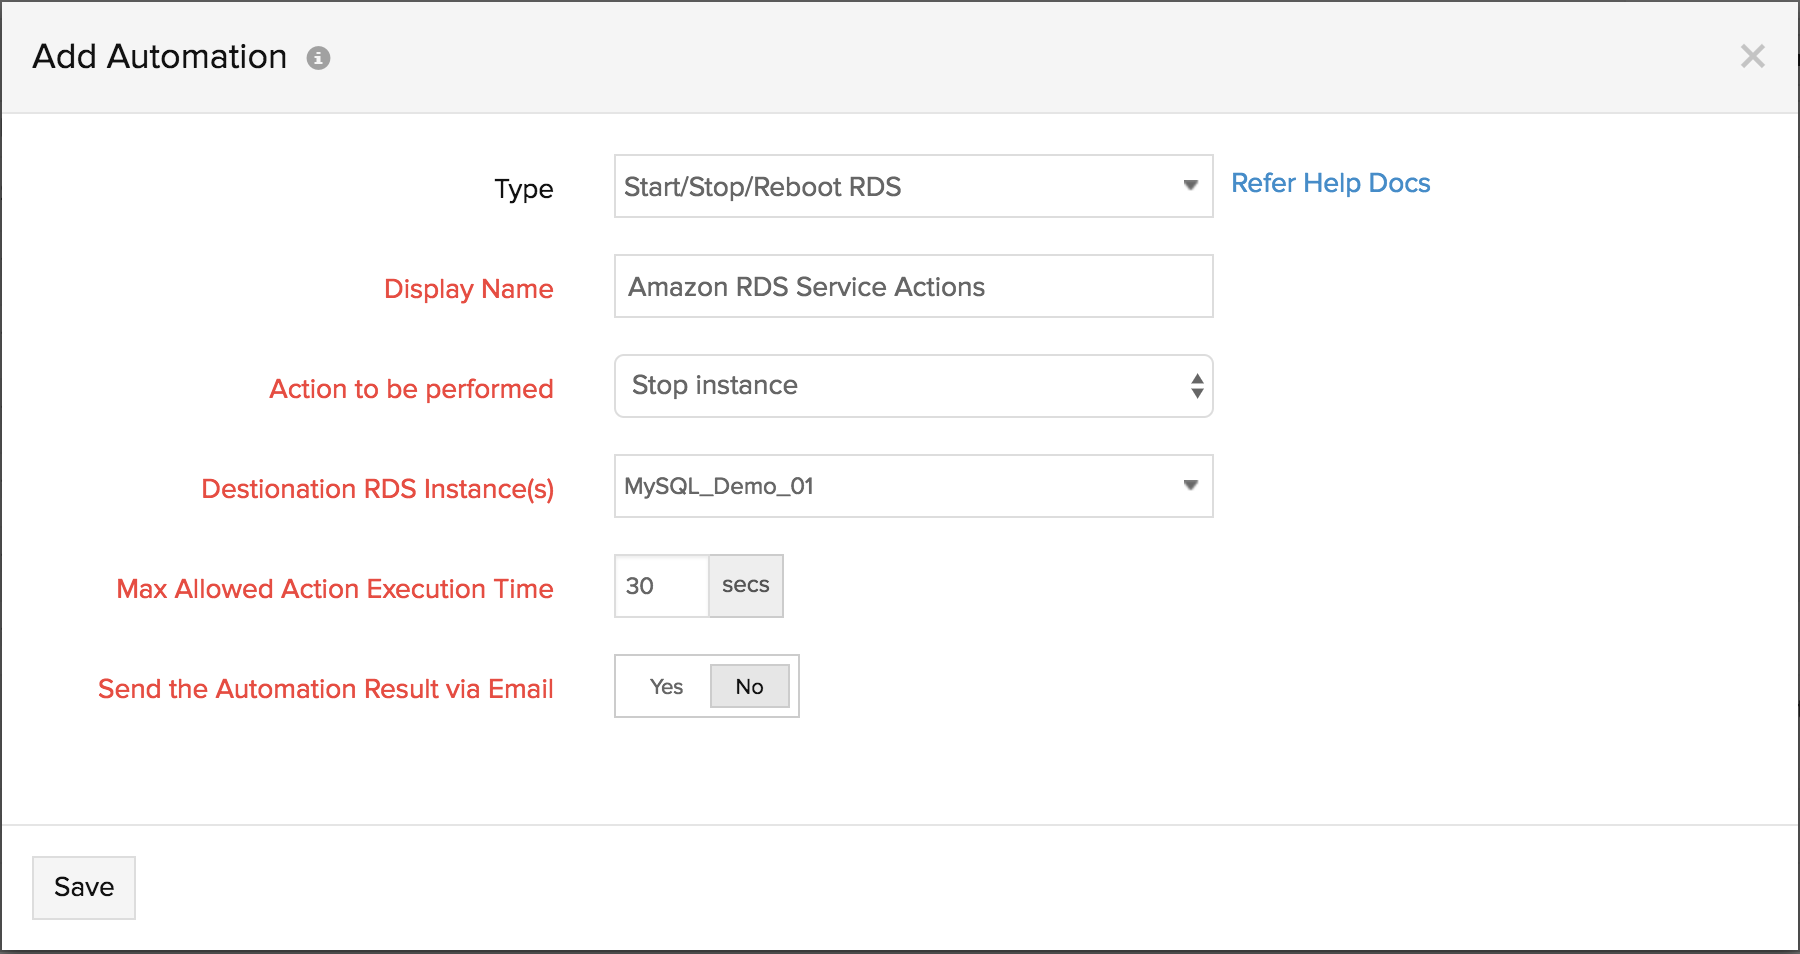 Amazon RDS Service Actions | Stop, Start and Reboot DB instances